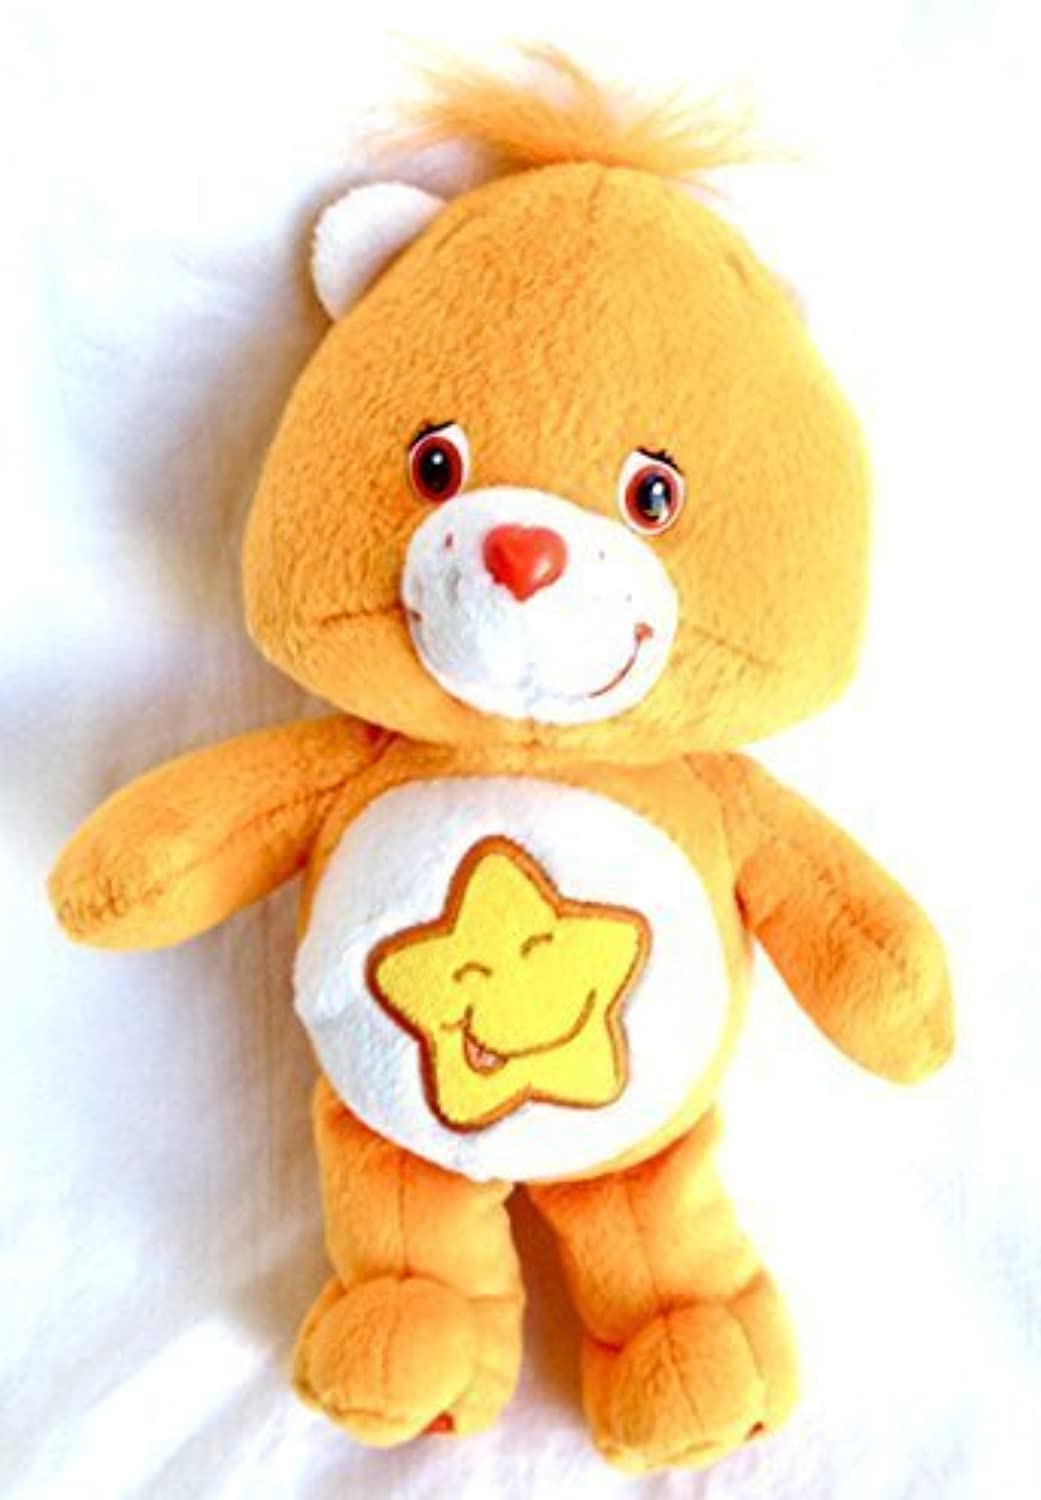 Care Bear  Laughalot Bear (8 Inch) by Care Bears